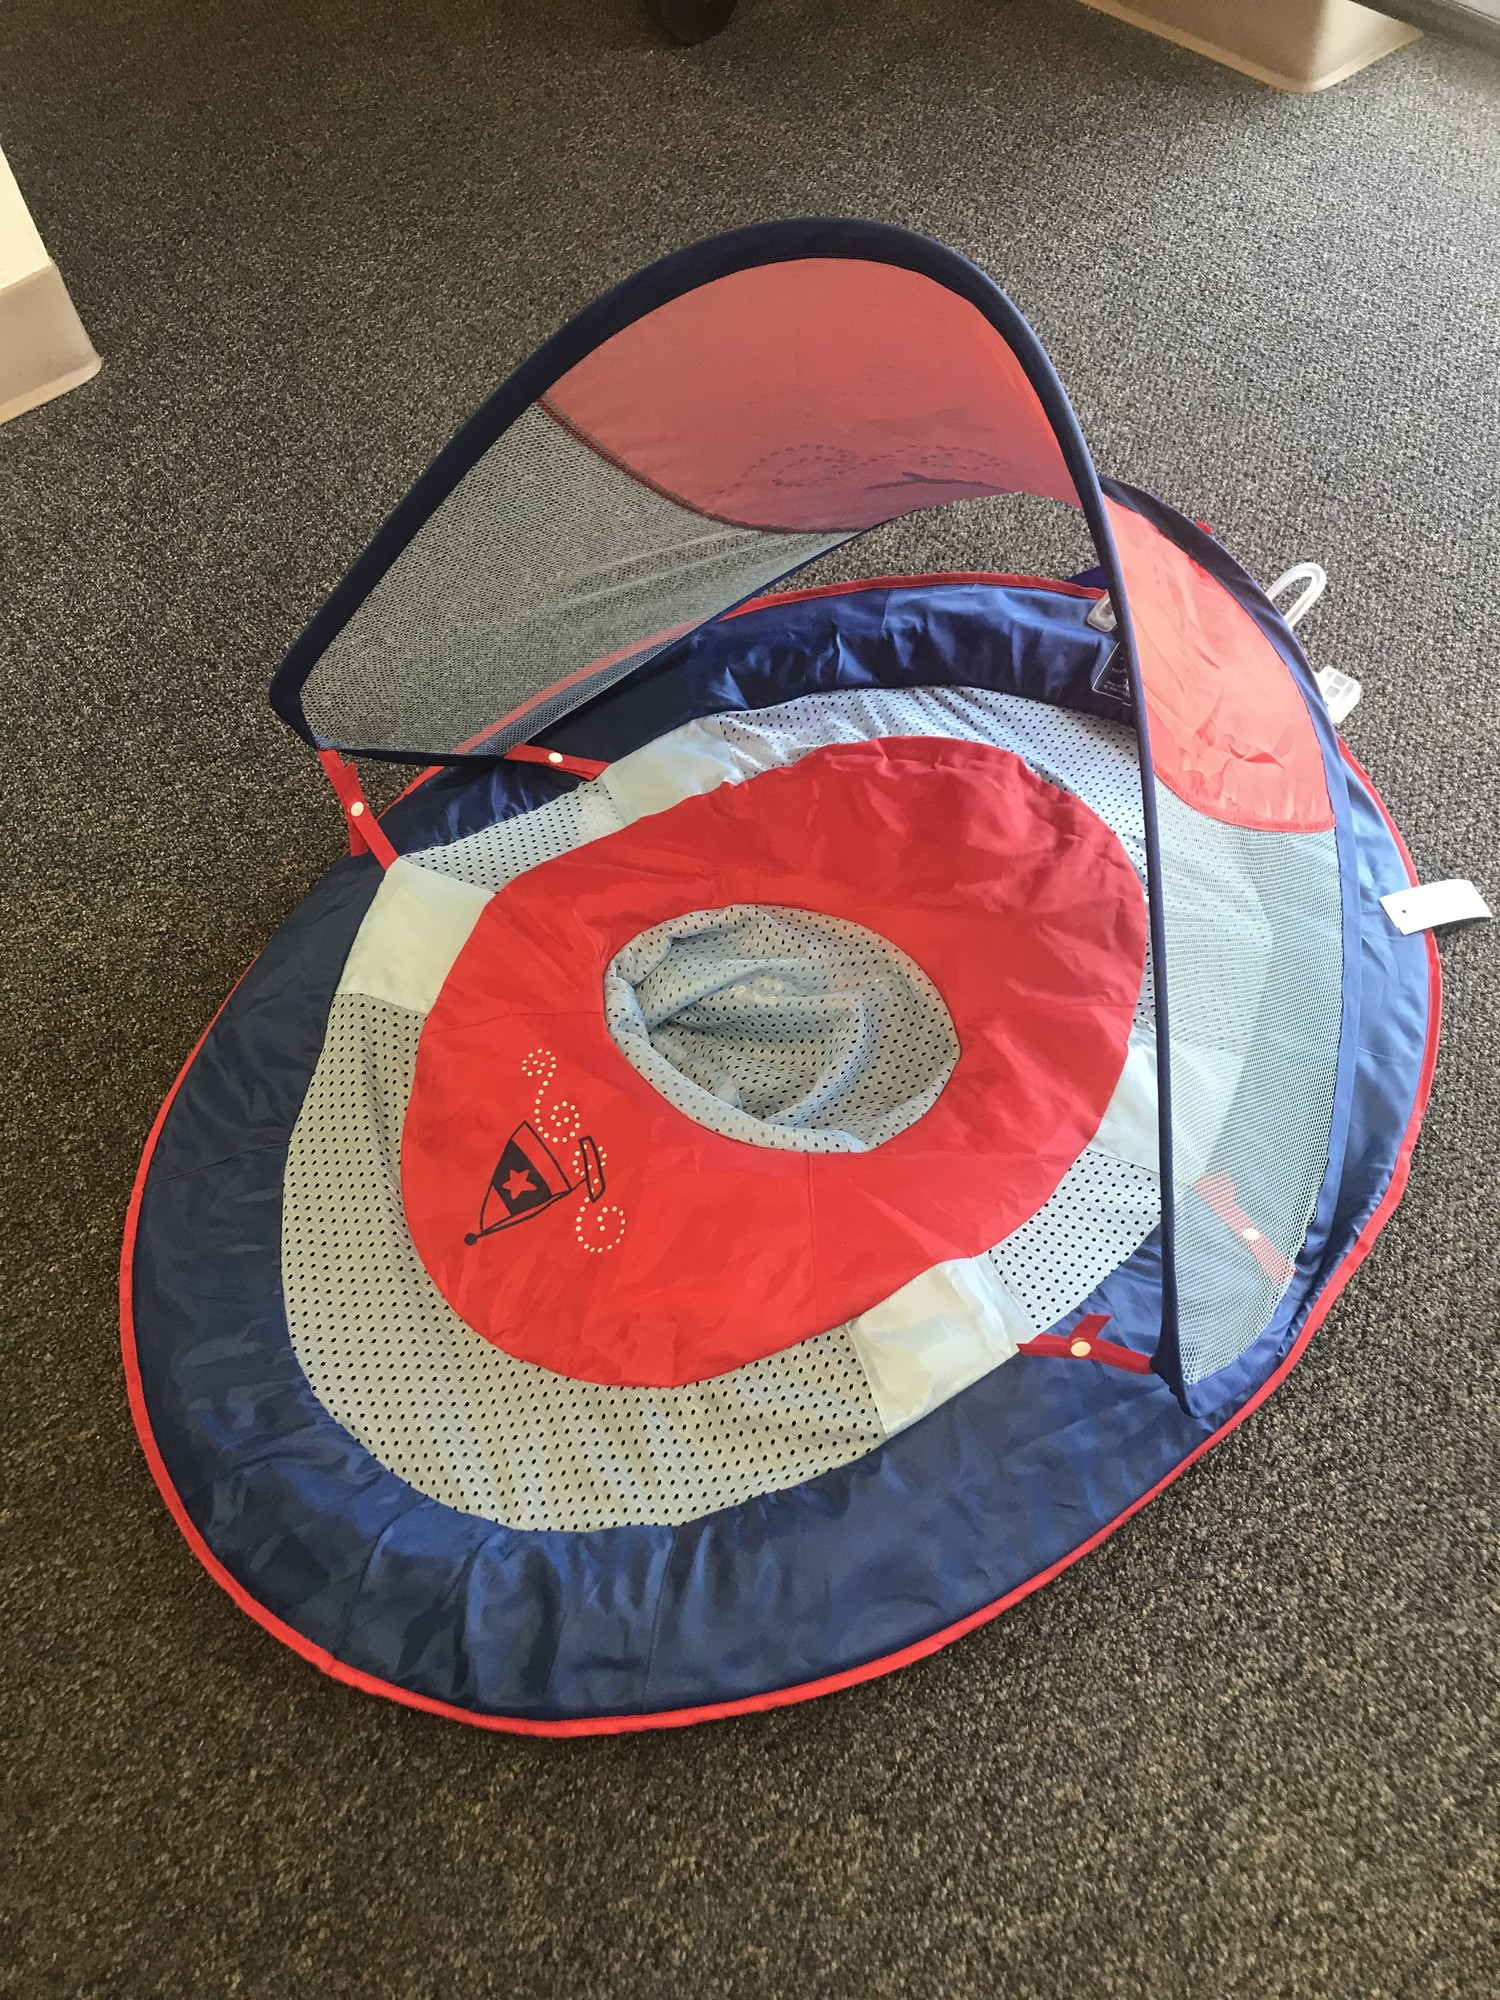 Infant inflatable floatation ring w/canopy, in excellent condition,